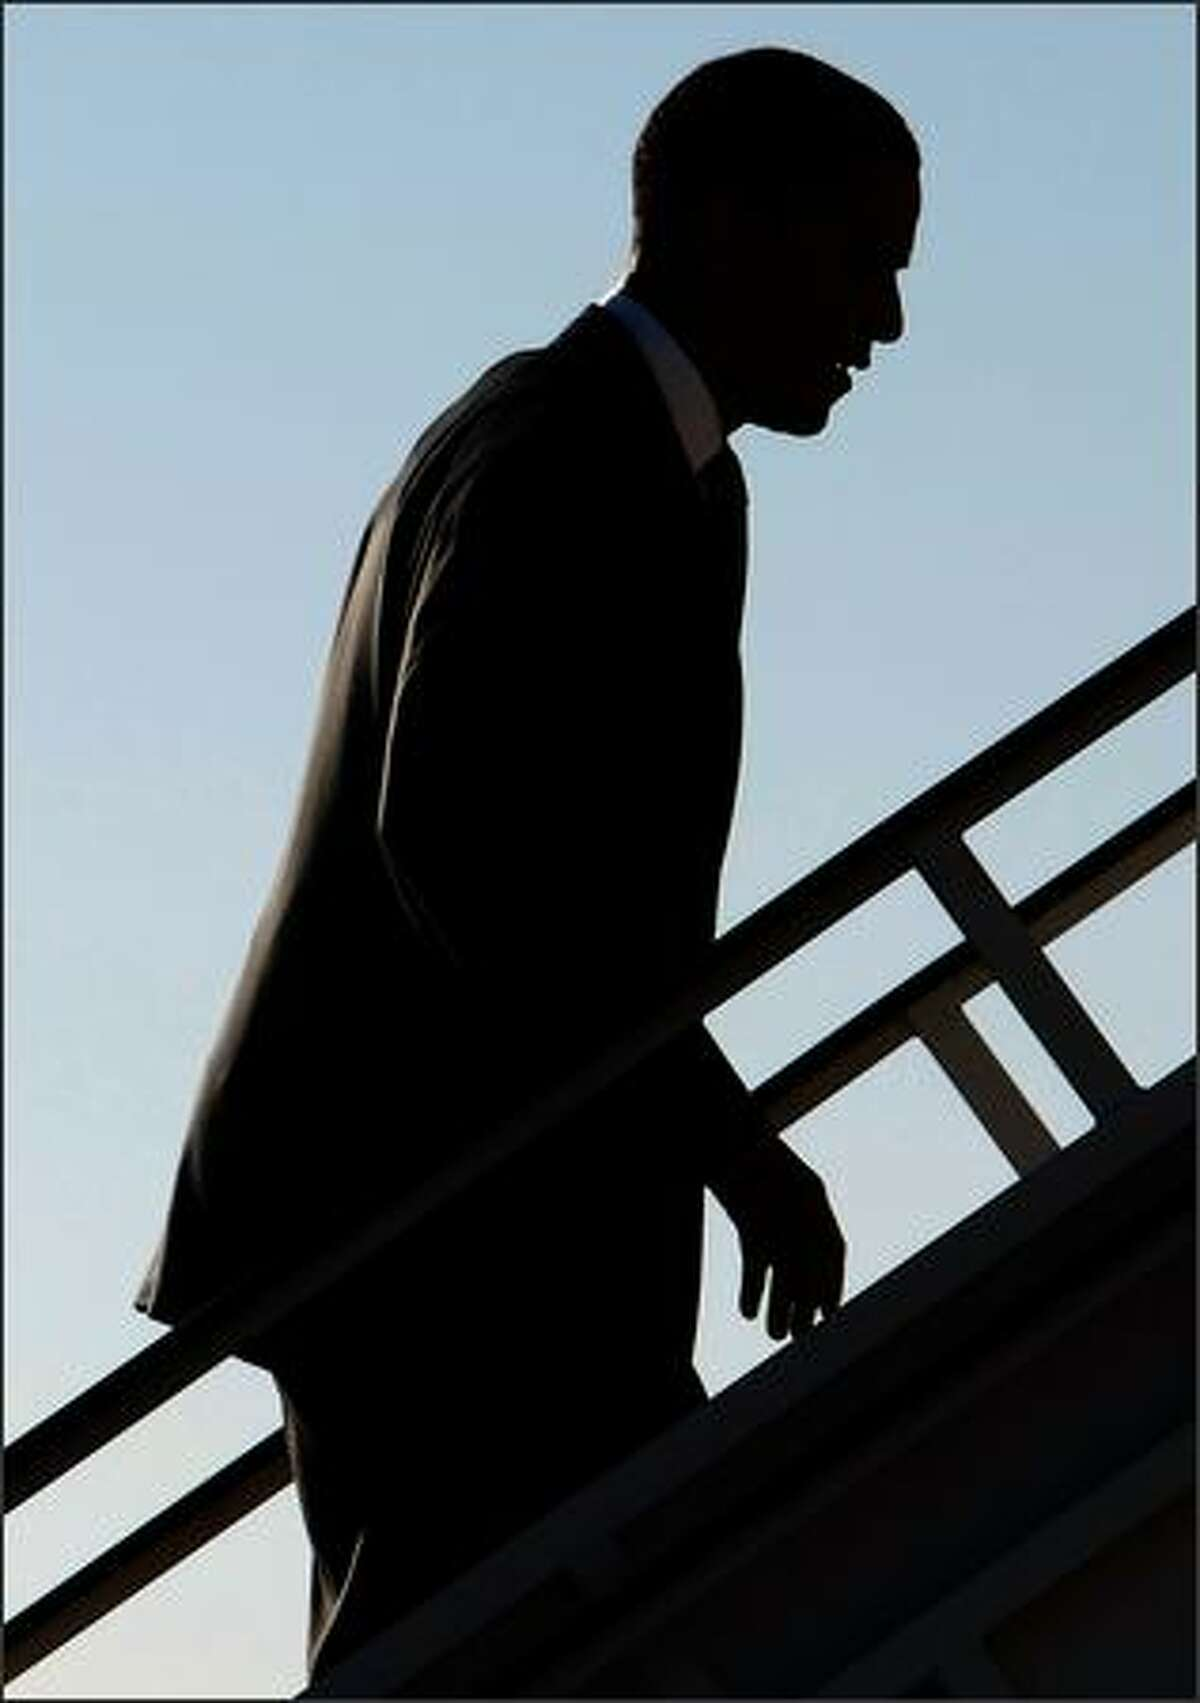 Democratic presidential candidate Sen. Barack Obama (D-IL) boards his campaign plane March 5, 2008 while departing San Antonio, Texas. Obama won only one of 4 primaries held yesterday as Sen. Hillary Clinton (D-NY) tightened the race considerably by winning Texas, Ohio and Rhode Island.